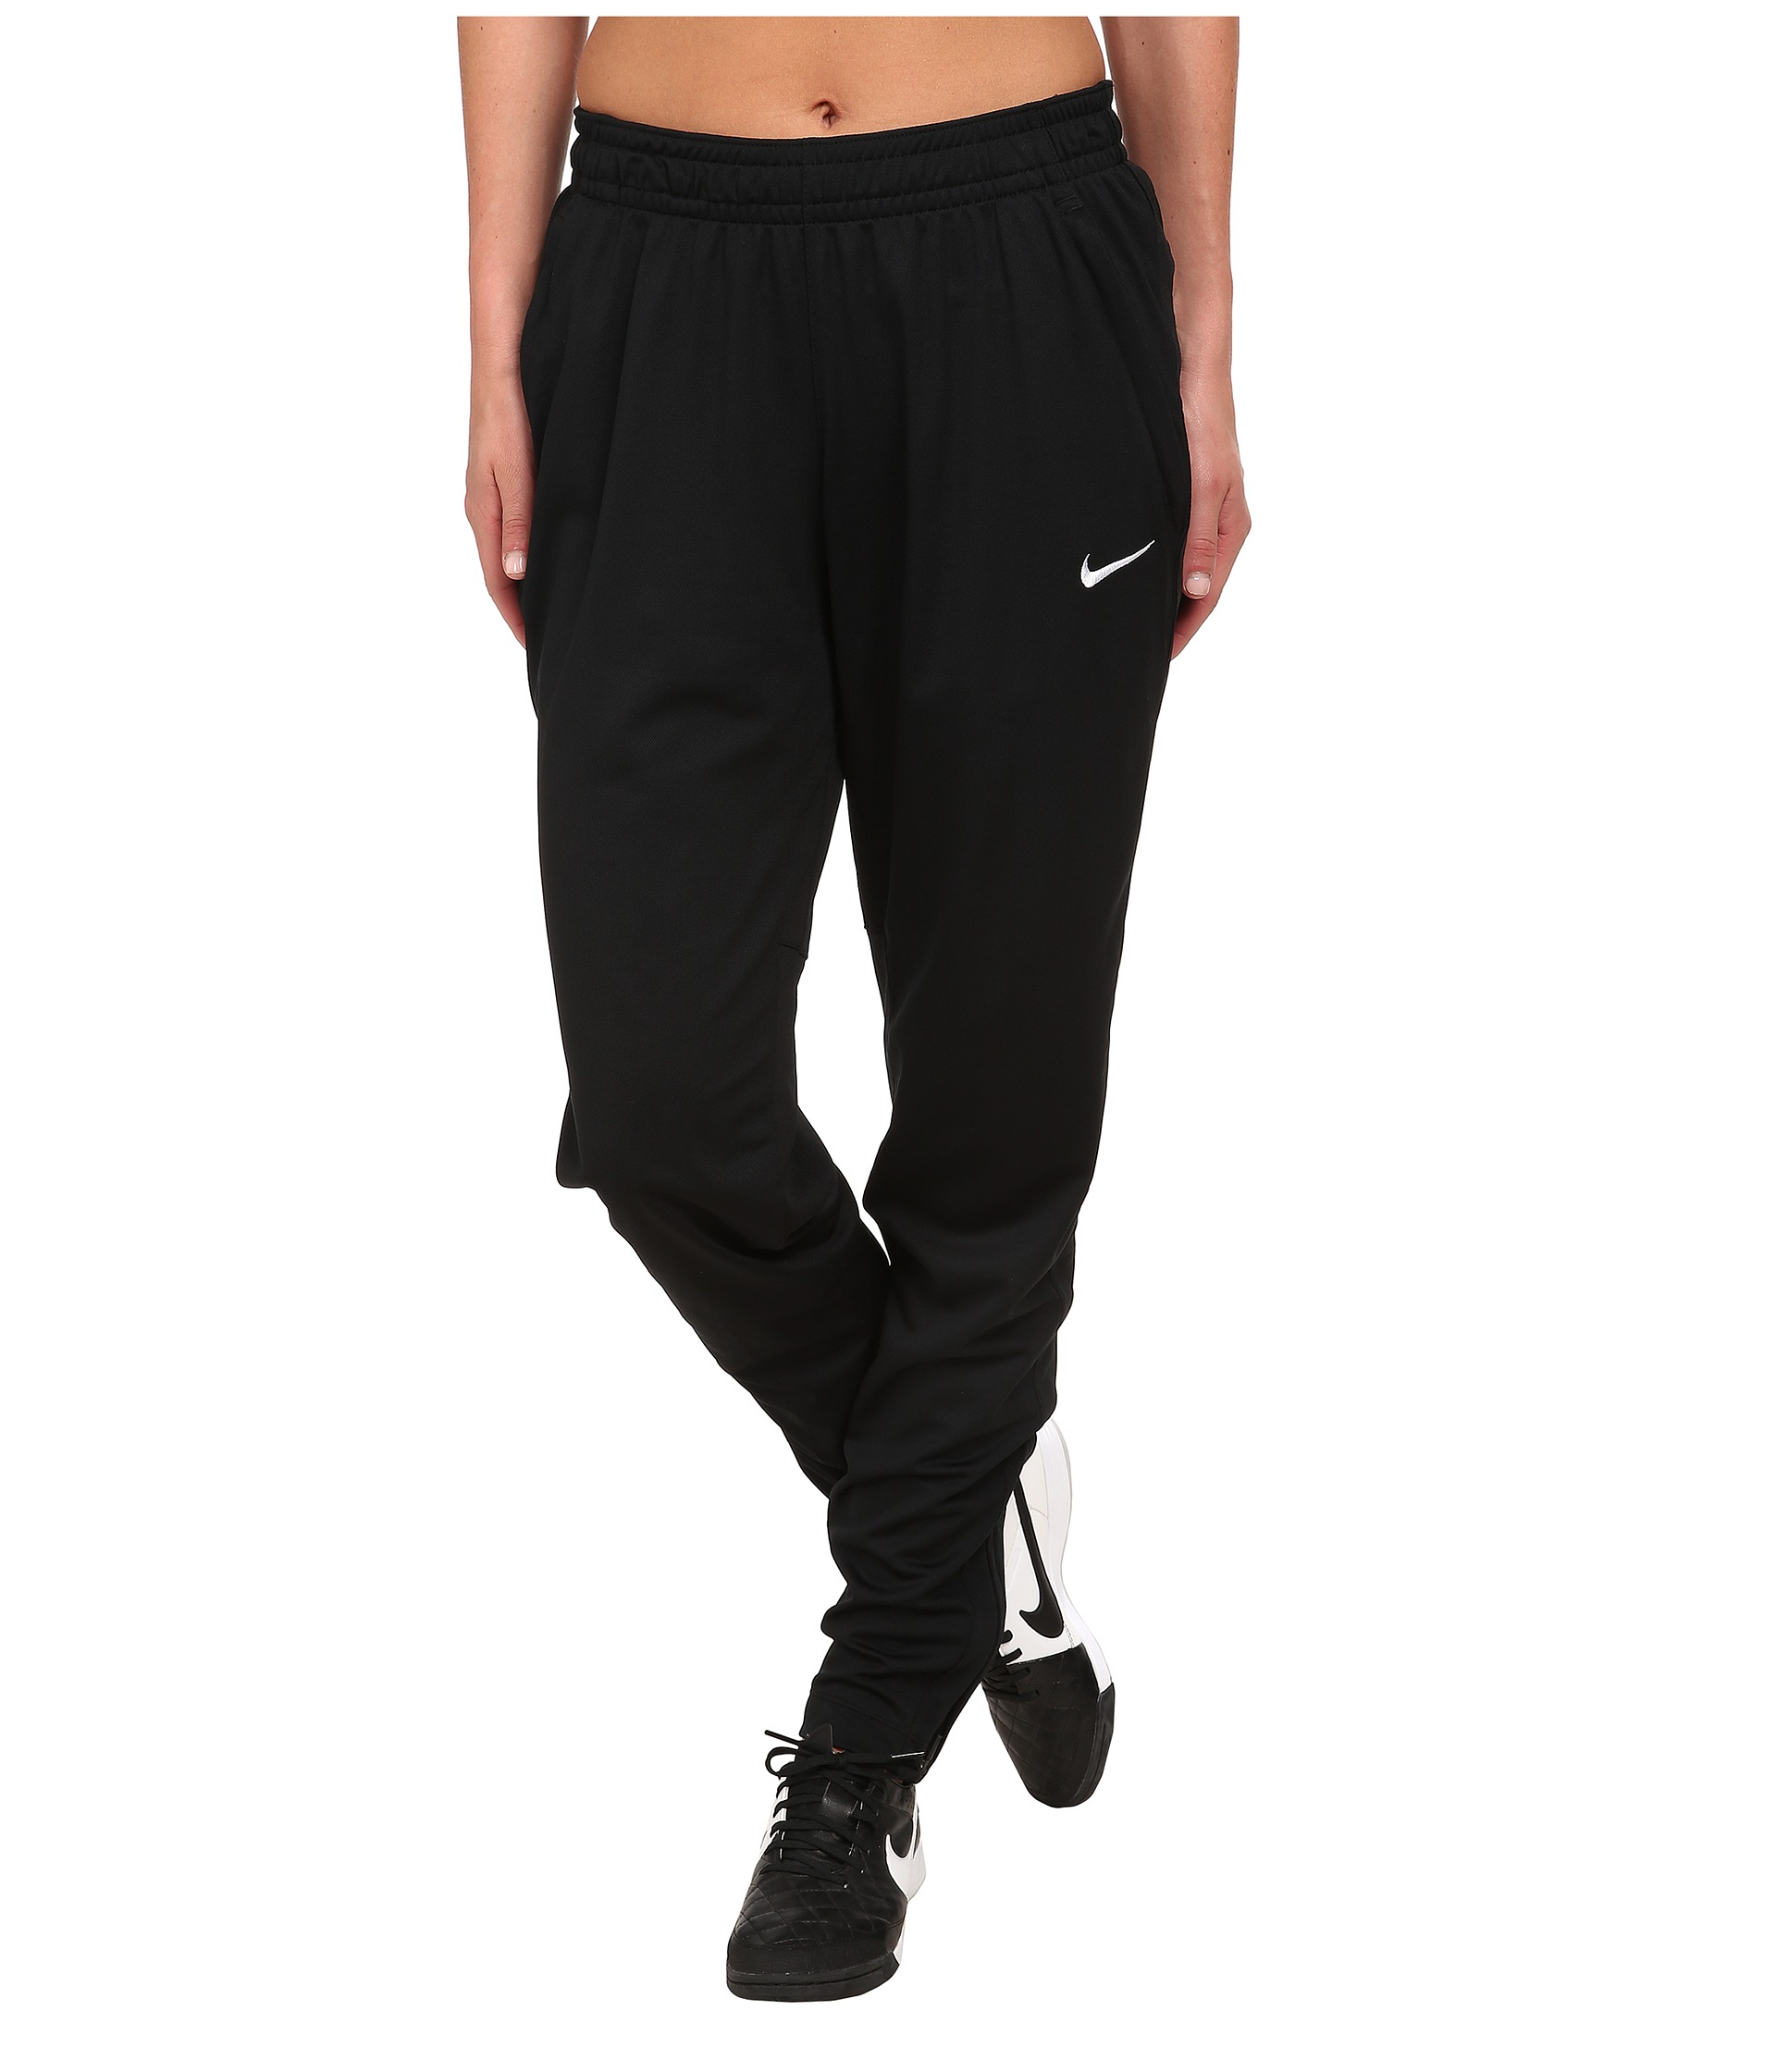 Creative Nike Legend 20 Tight DriFit Pants  Women39s  Training  Clothing